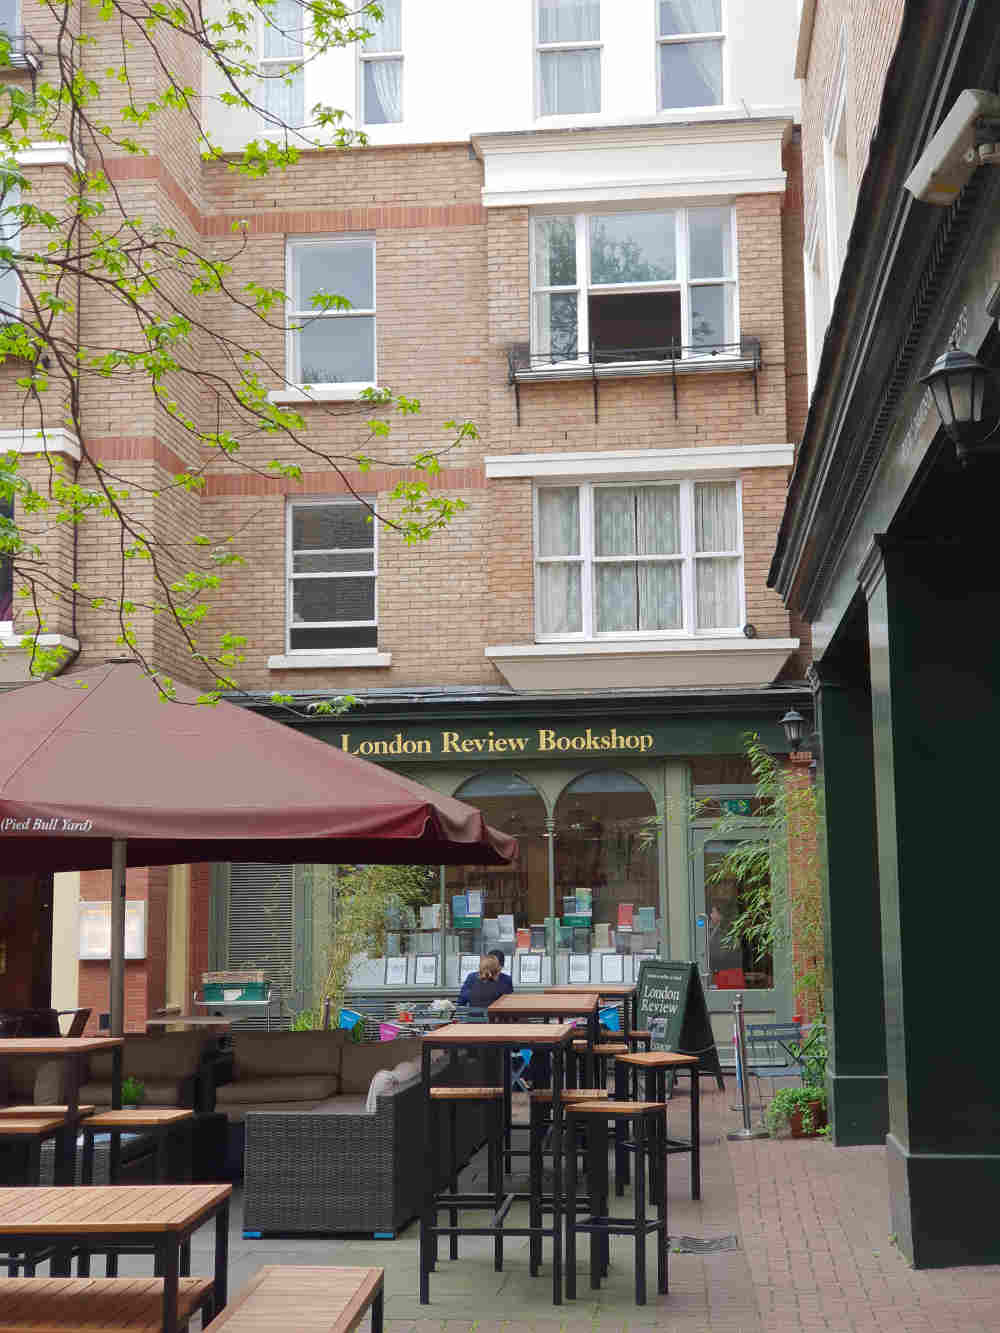 London Review of Books, best bookshop cafes in London, Terry Glover